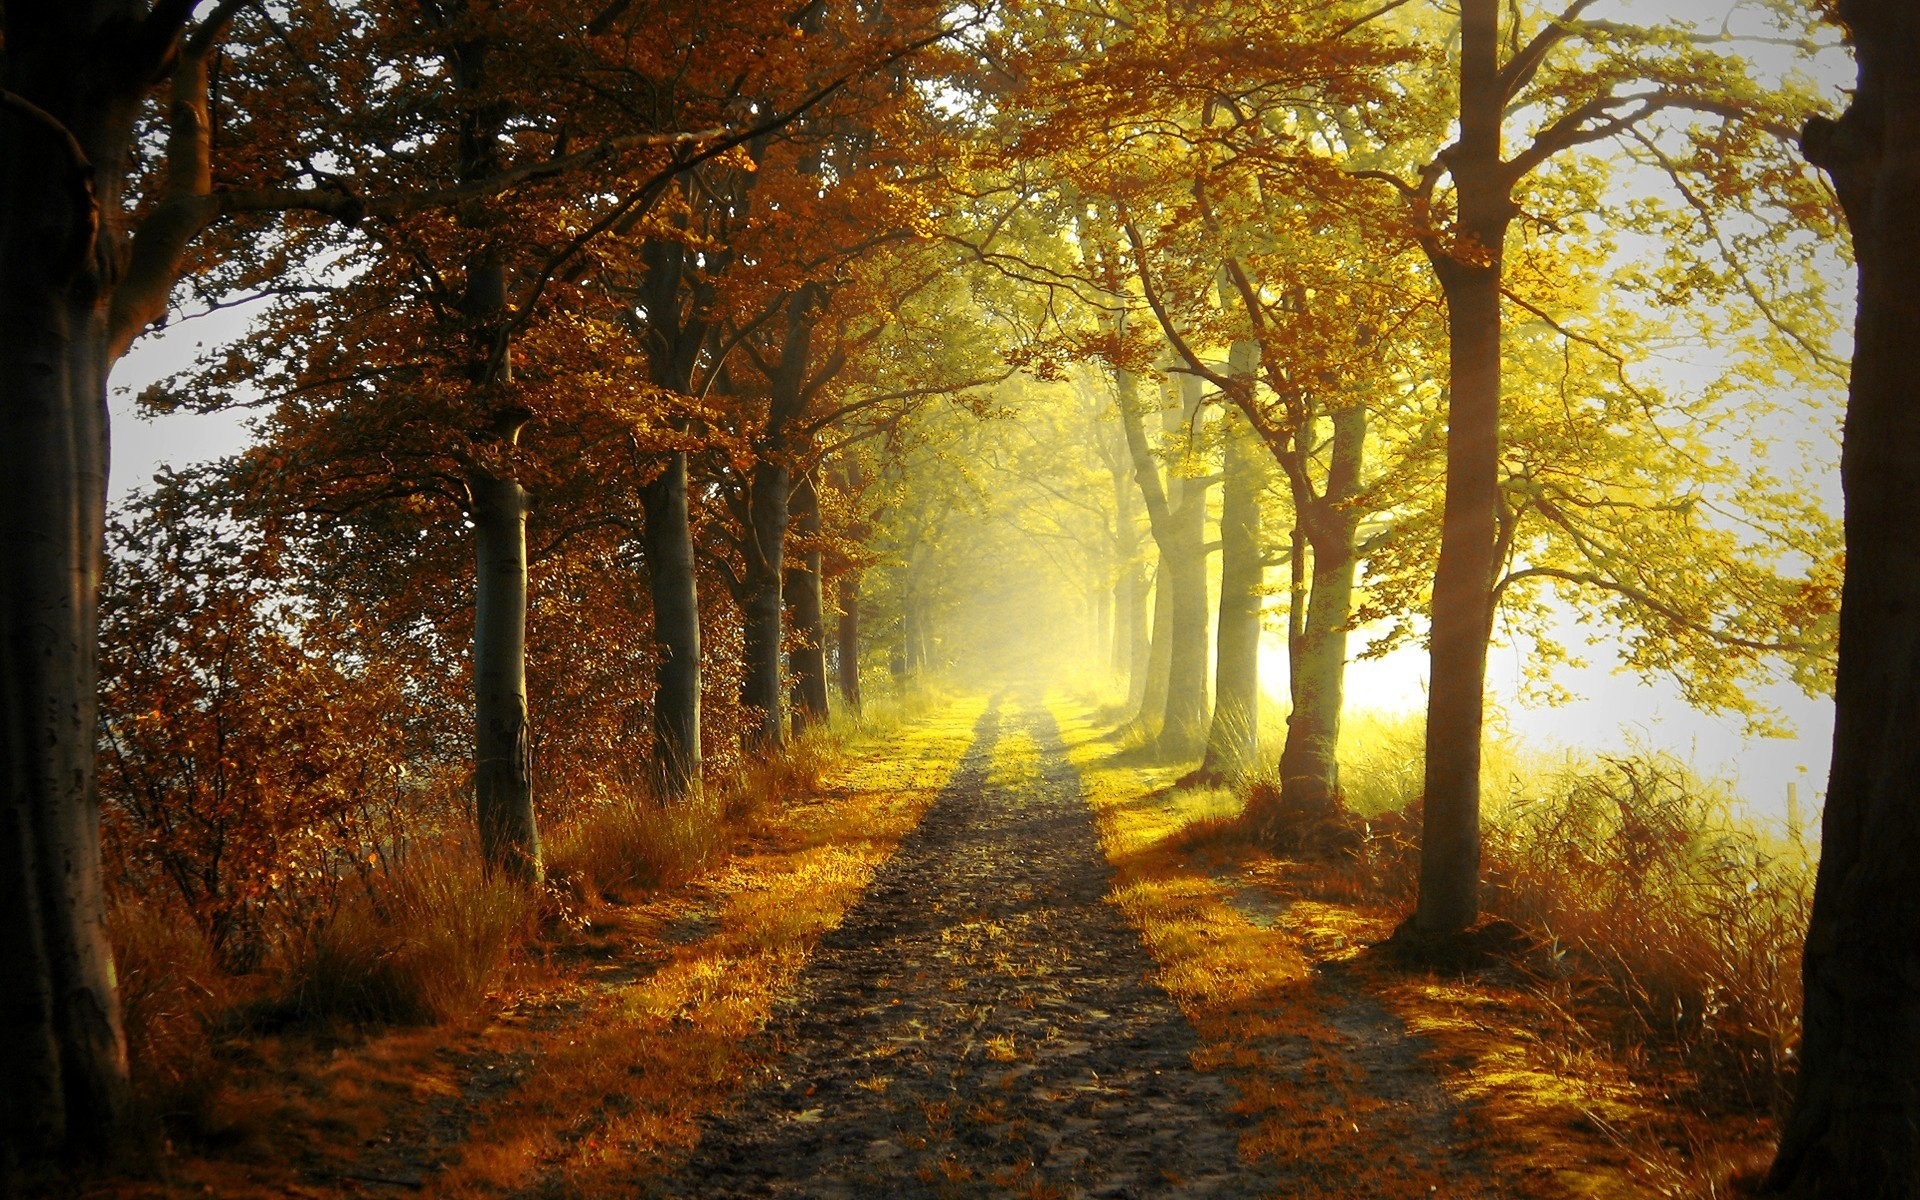 wallpaper-autumn-road-177798.jpg